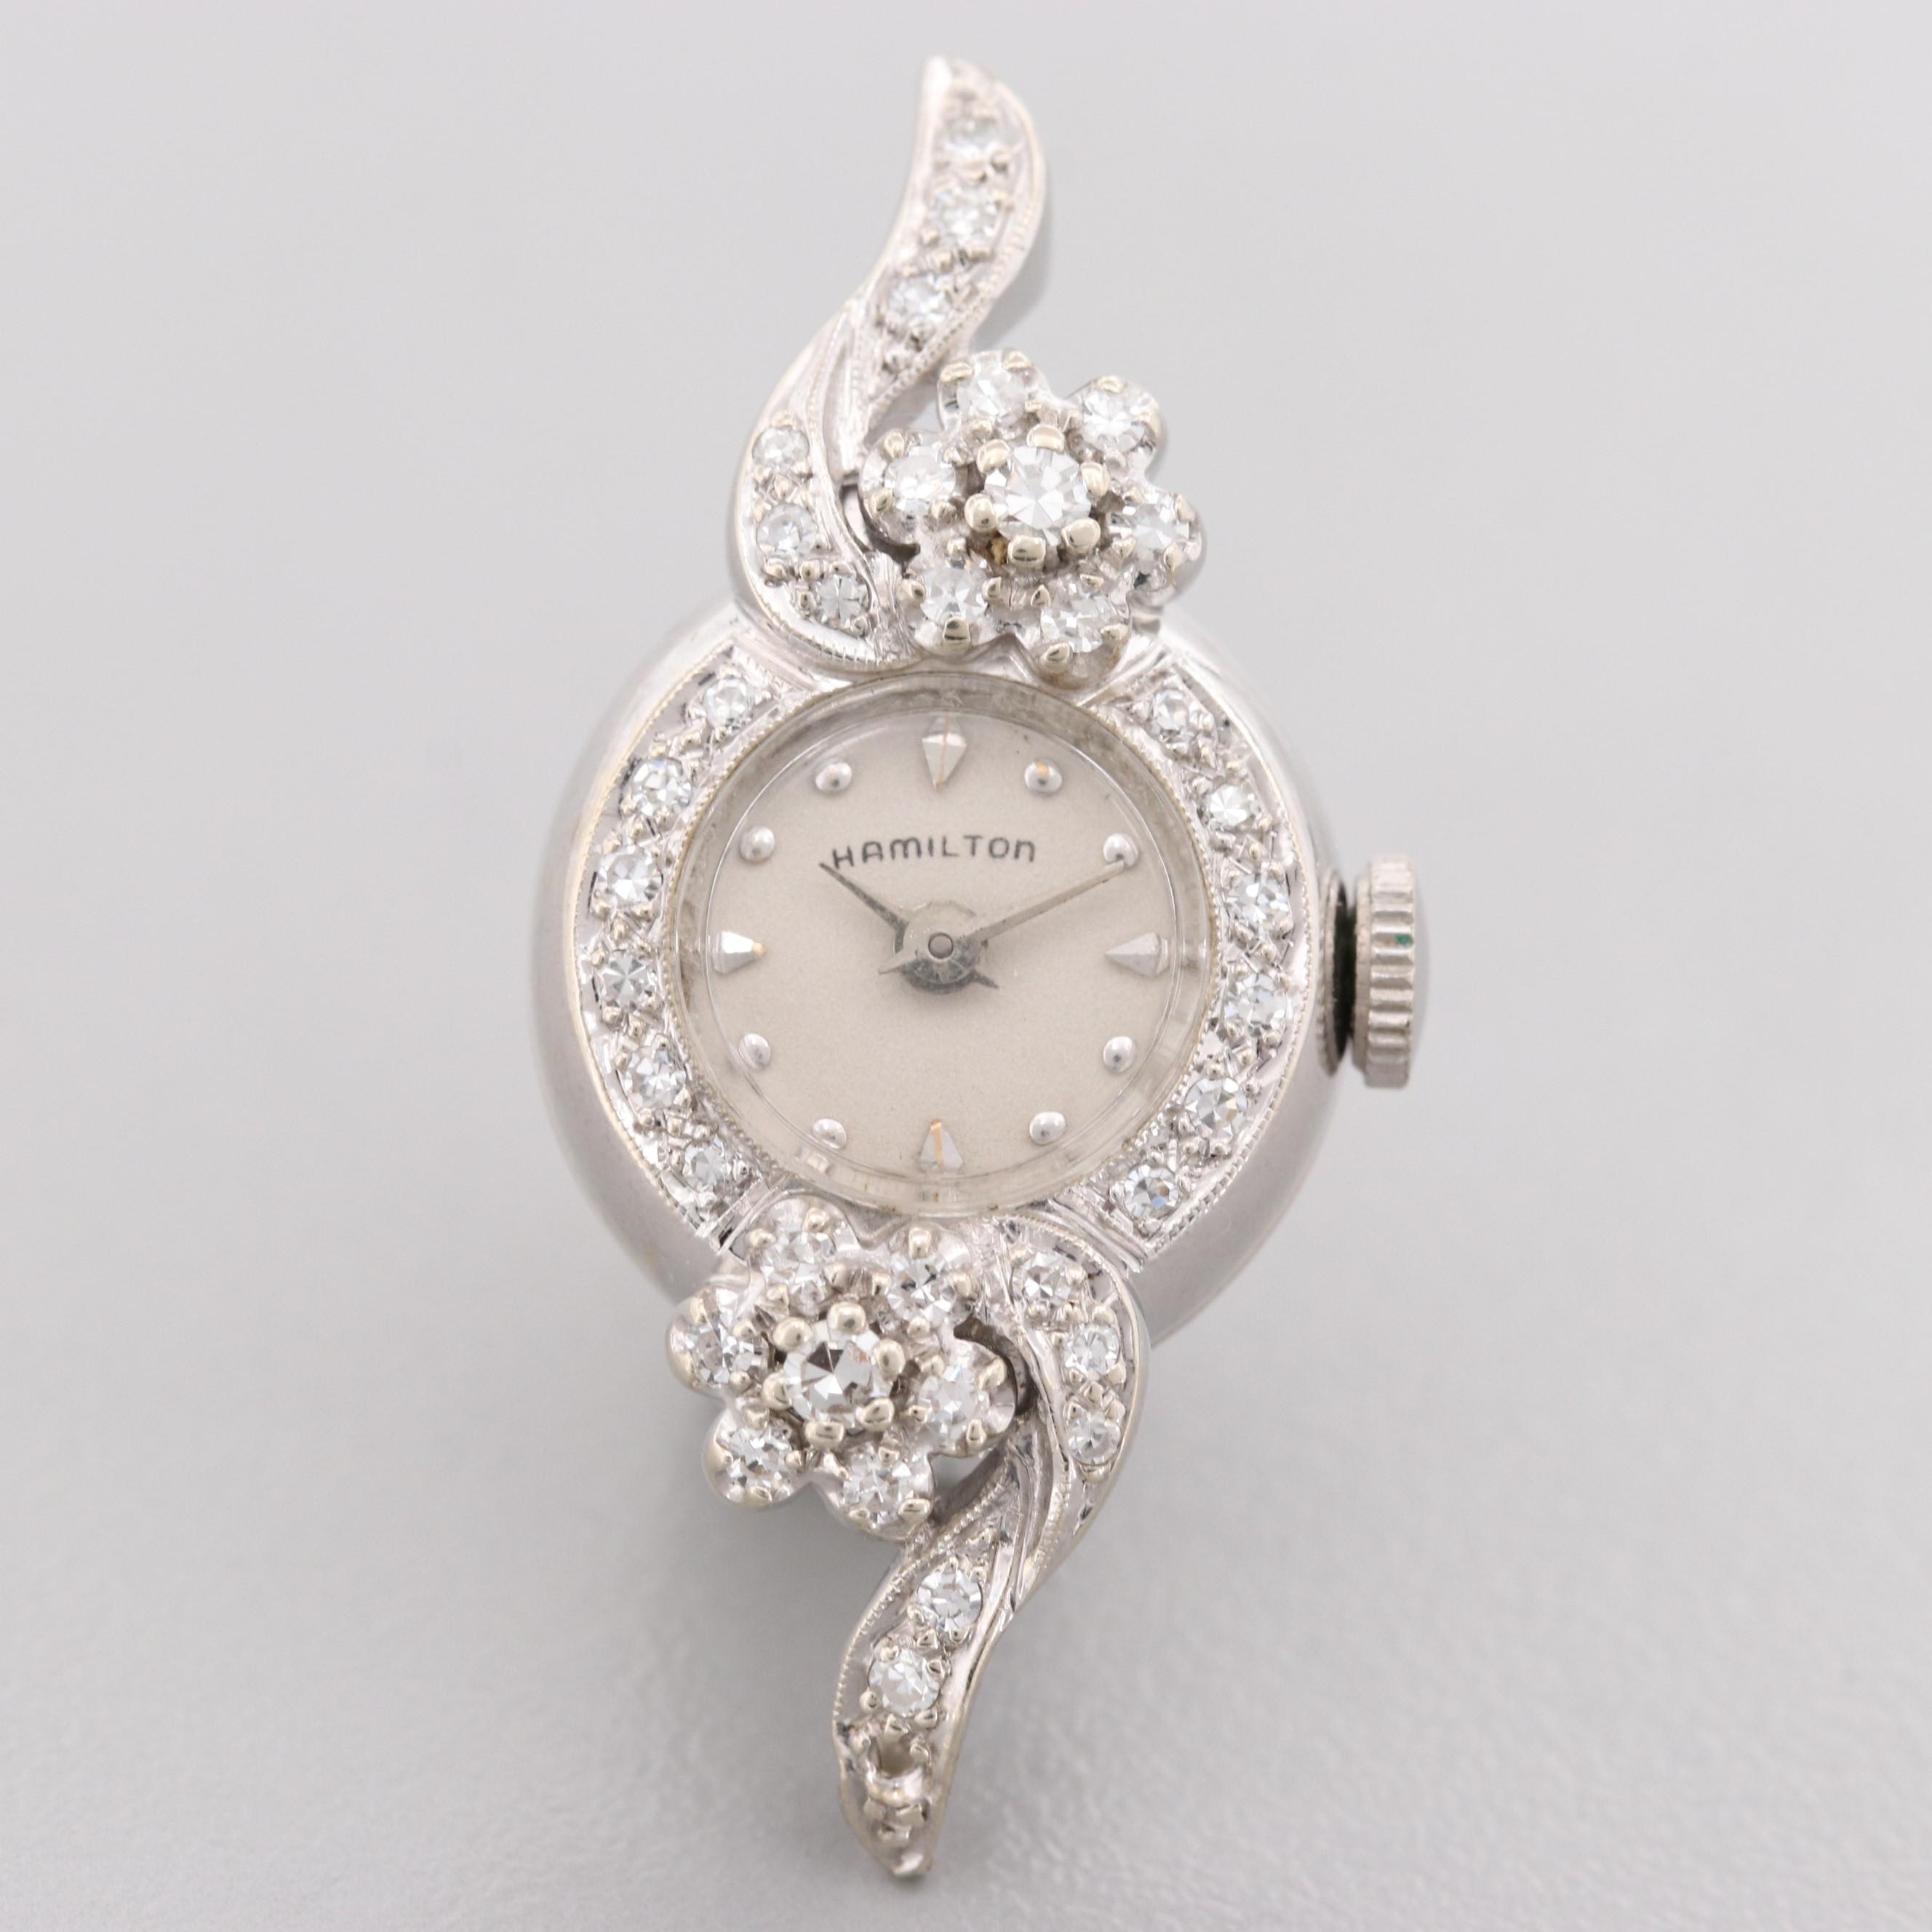 Hamilton 14K White Gold Wristwatch With Diamond Bezel And Diamond Floral Accents